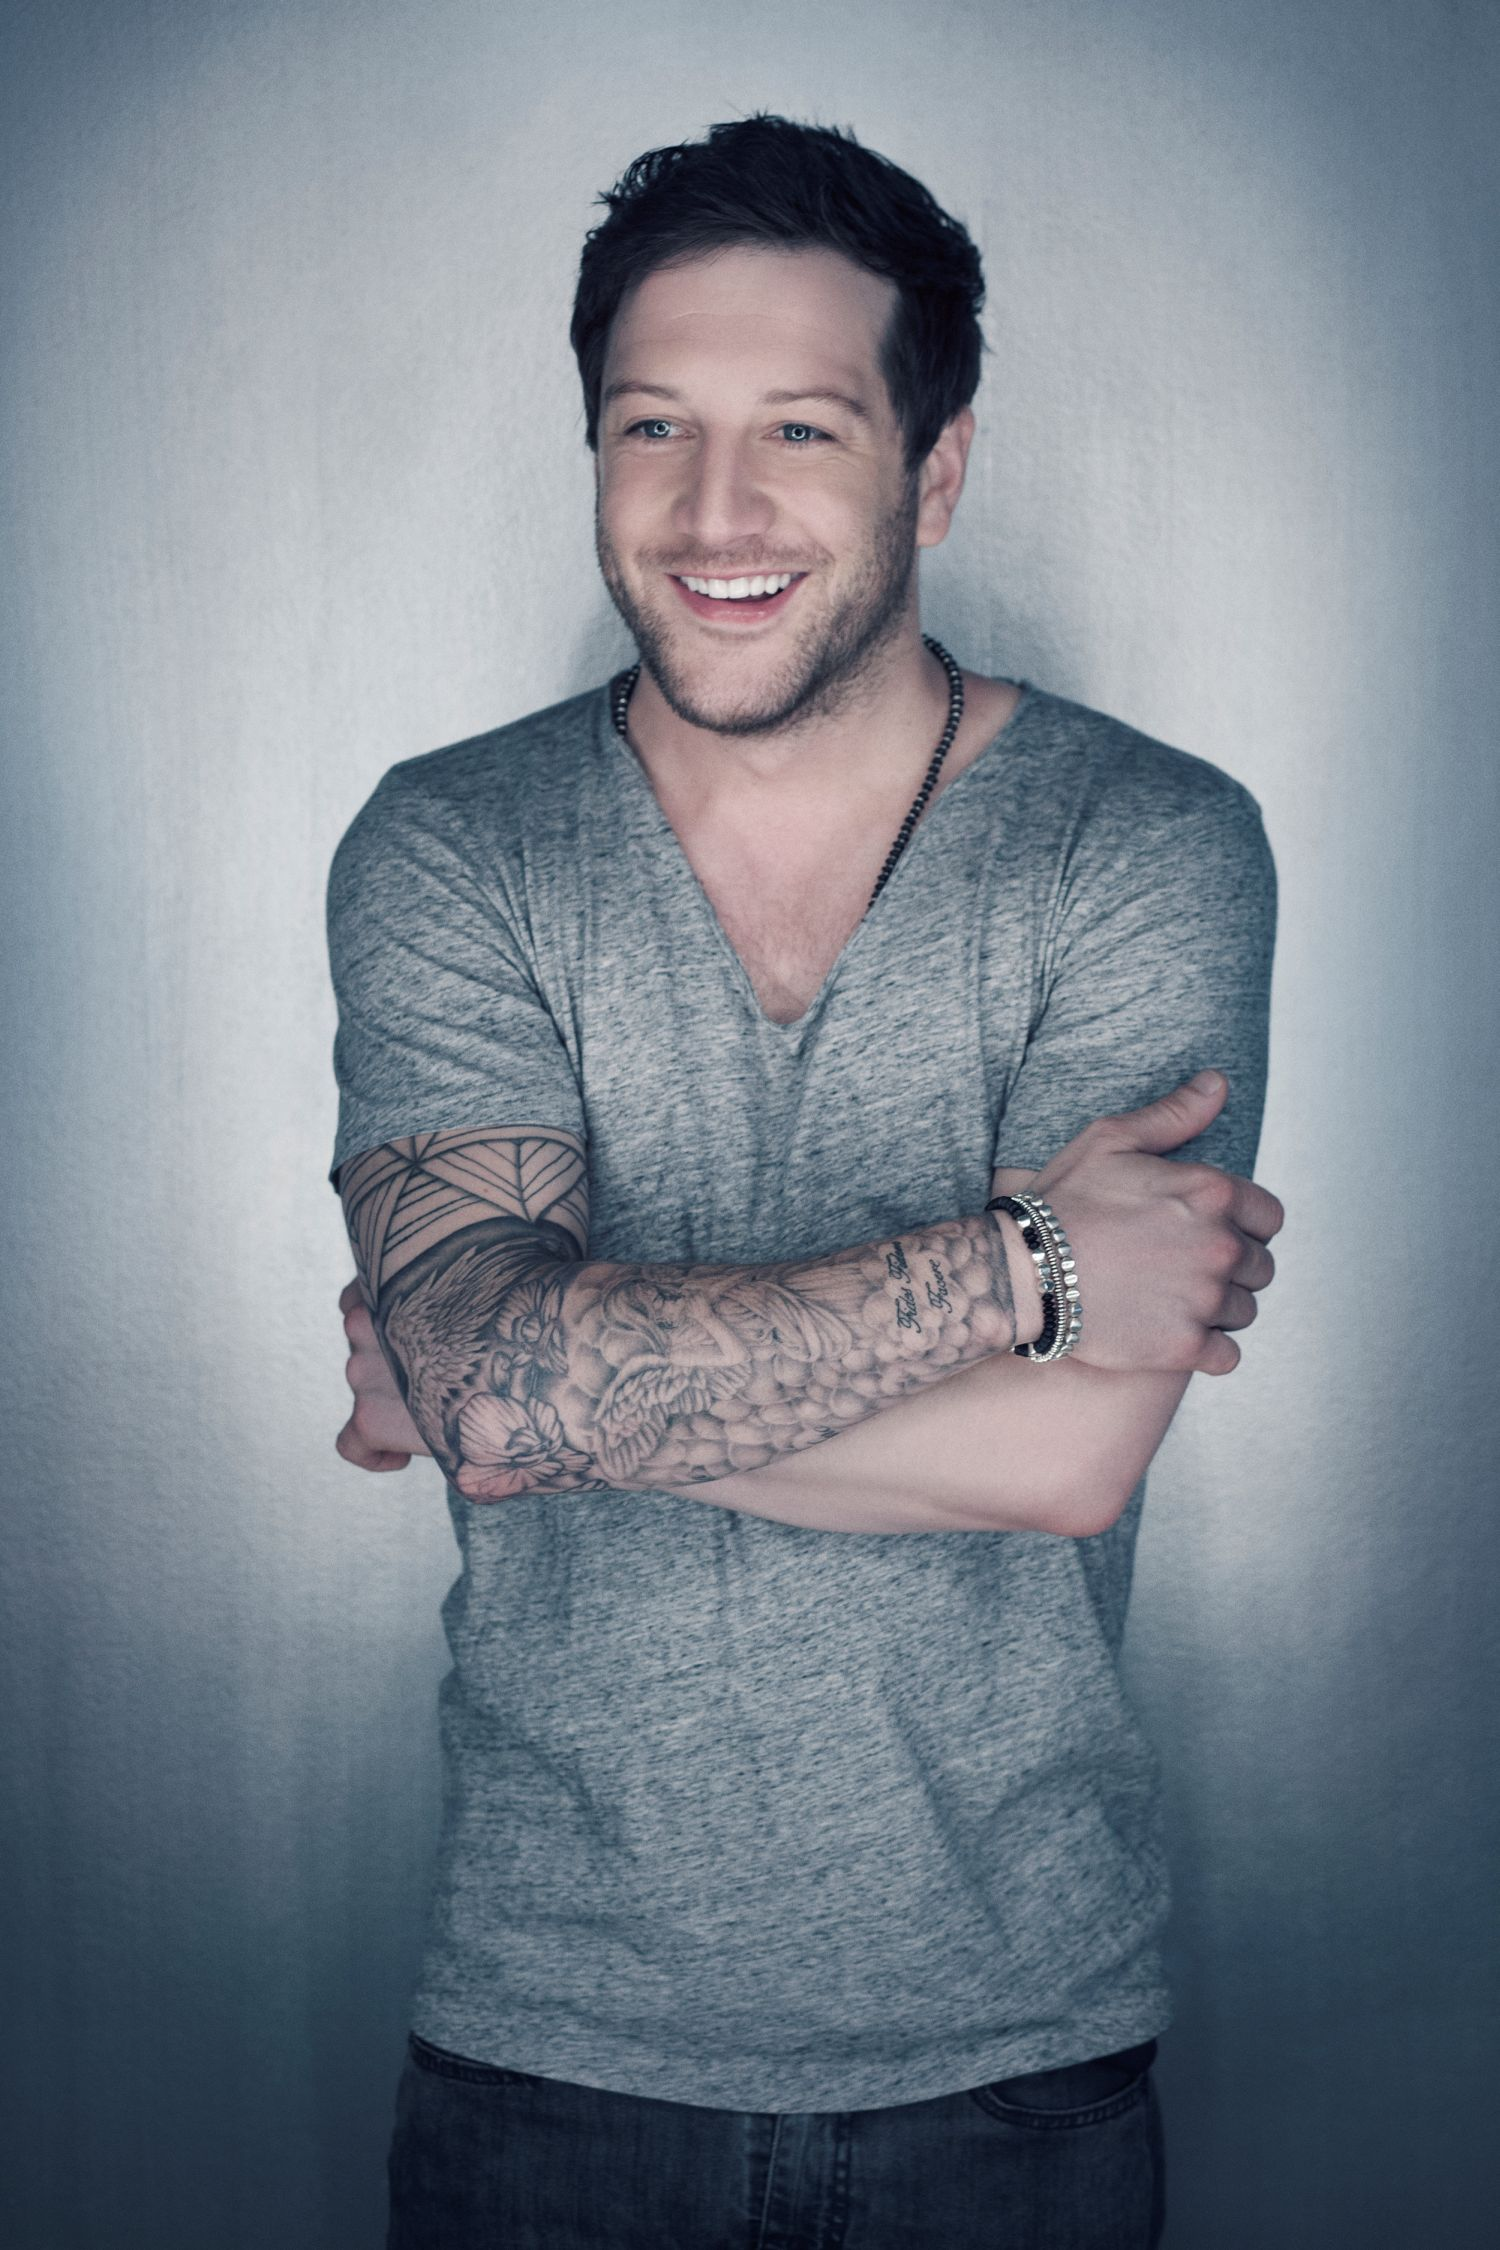 MATT CARDLE: The FULL interview